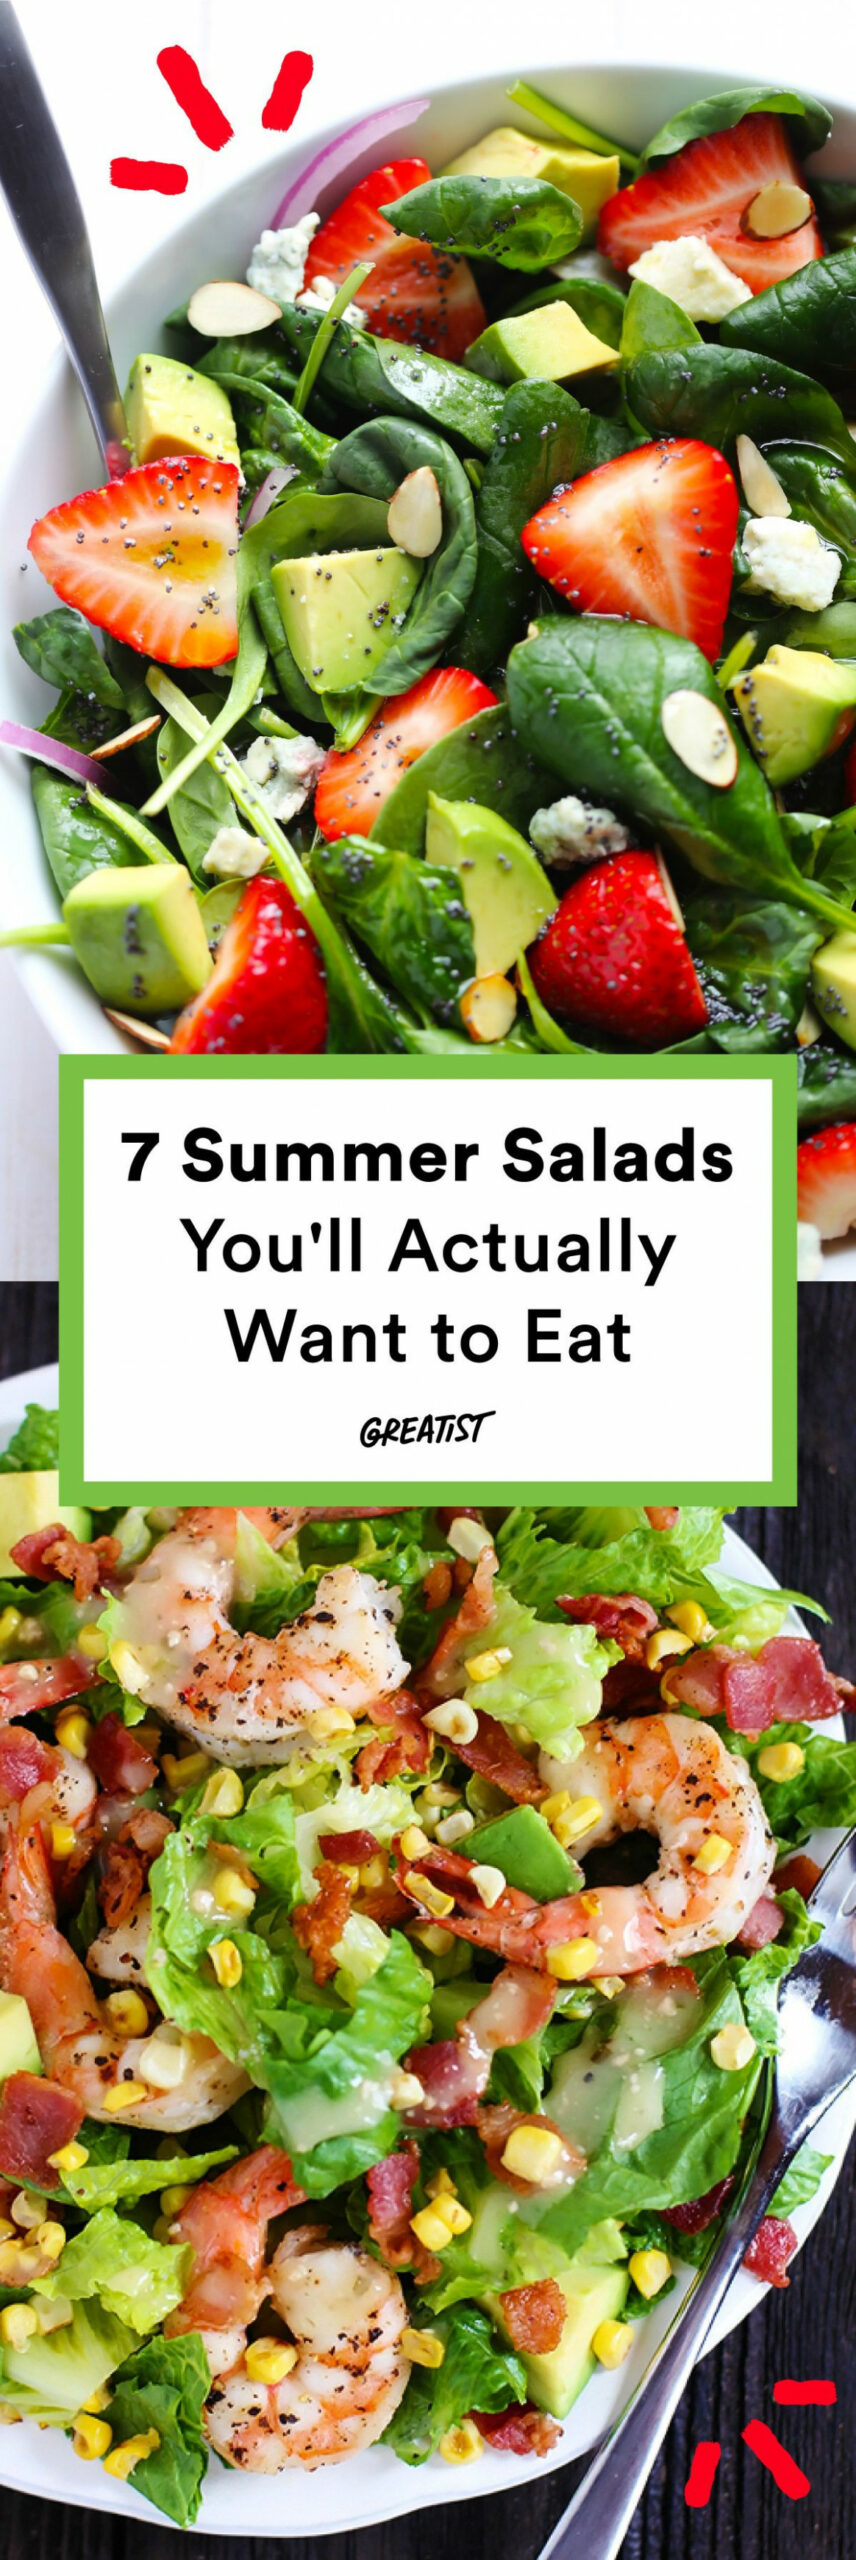 7 Summer Salads You'll Actually Want To Eat | Salads That ..